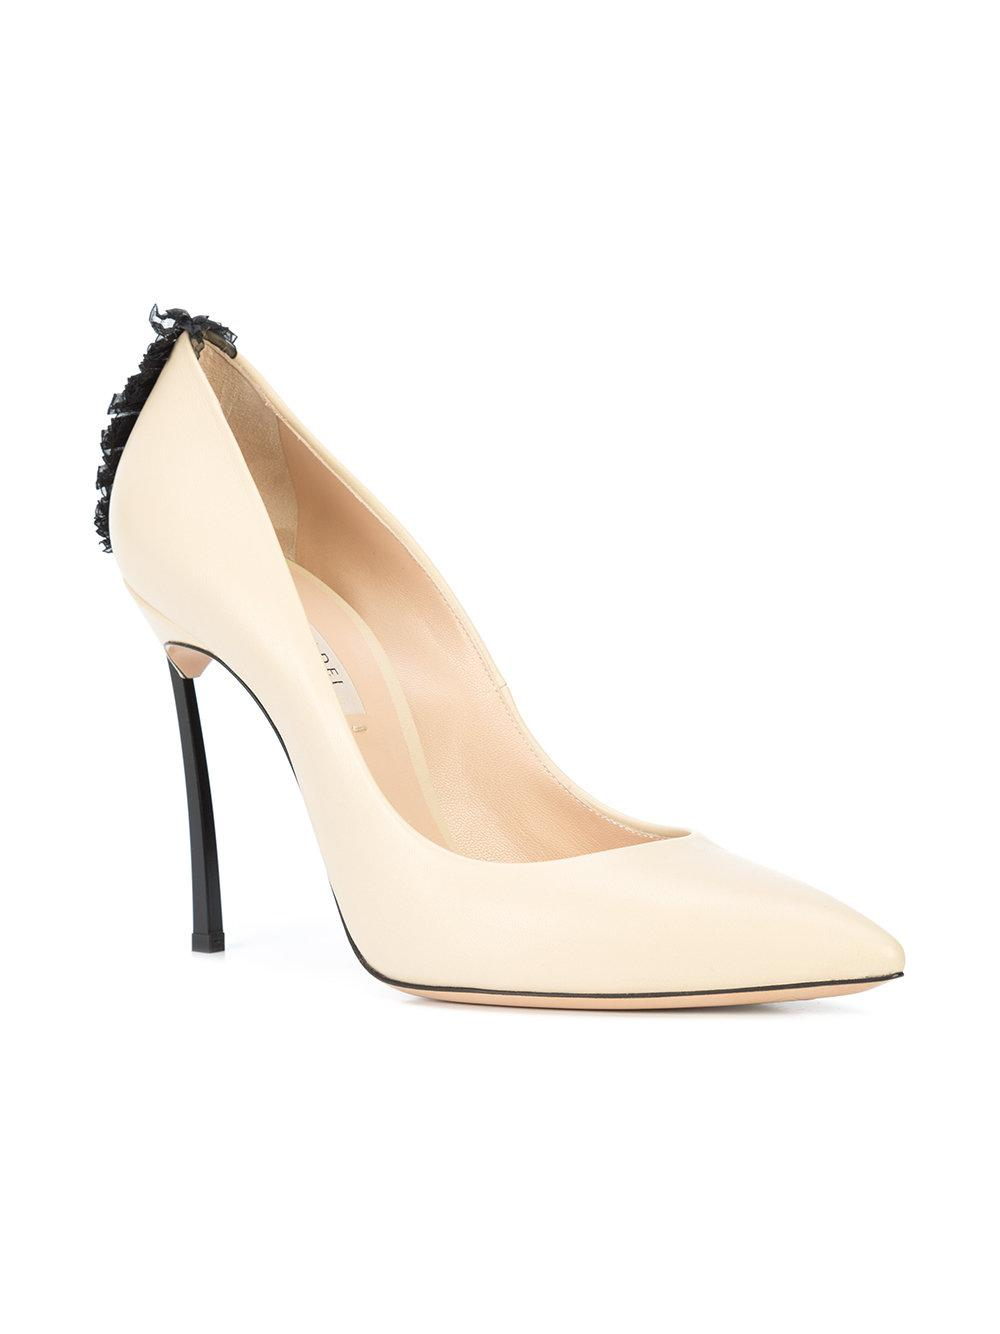 Shop For For Sale Nice Blade ruffle-trimmed pumps - Nude & Neutrals Casadei Wide Range Of Online eG5FhH